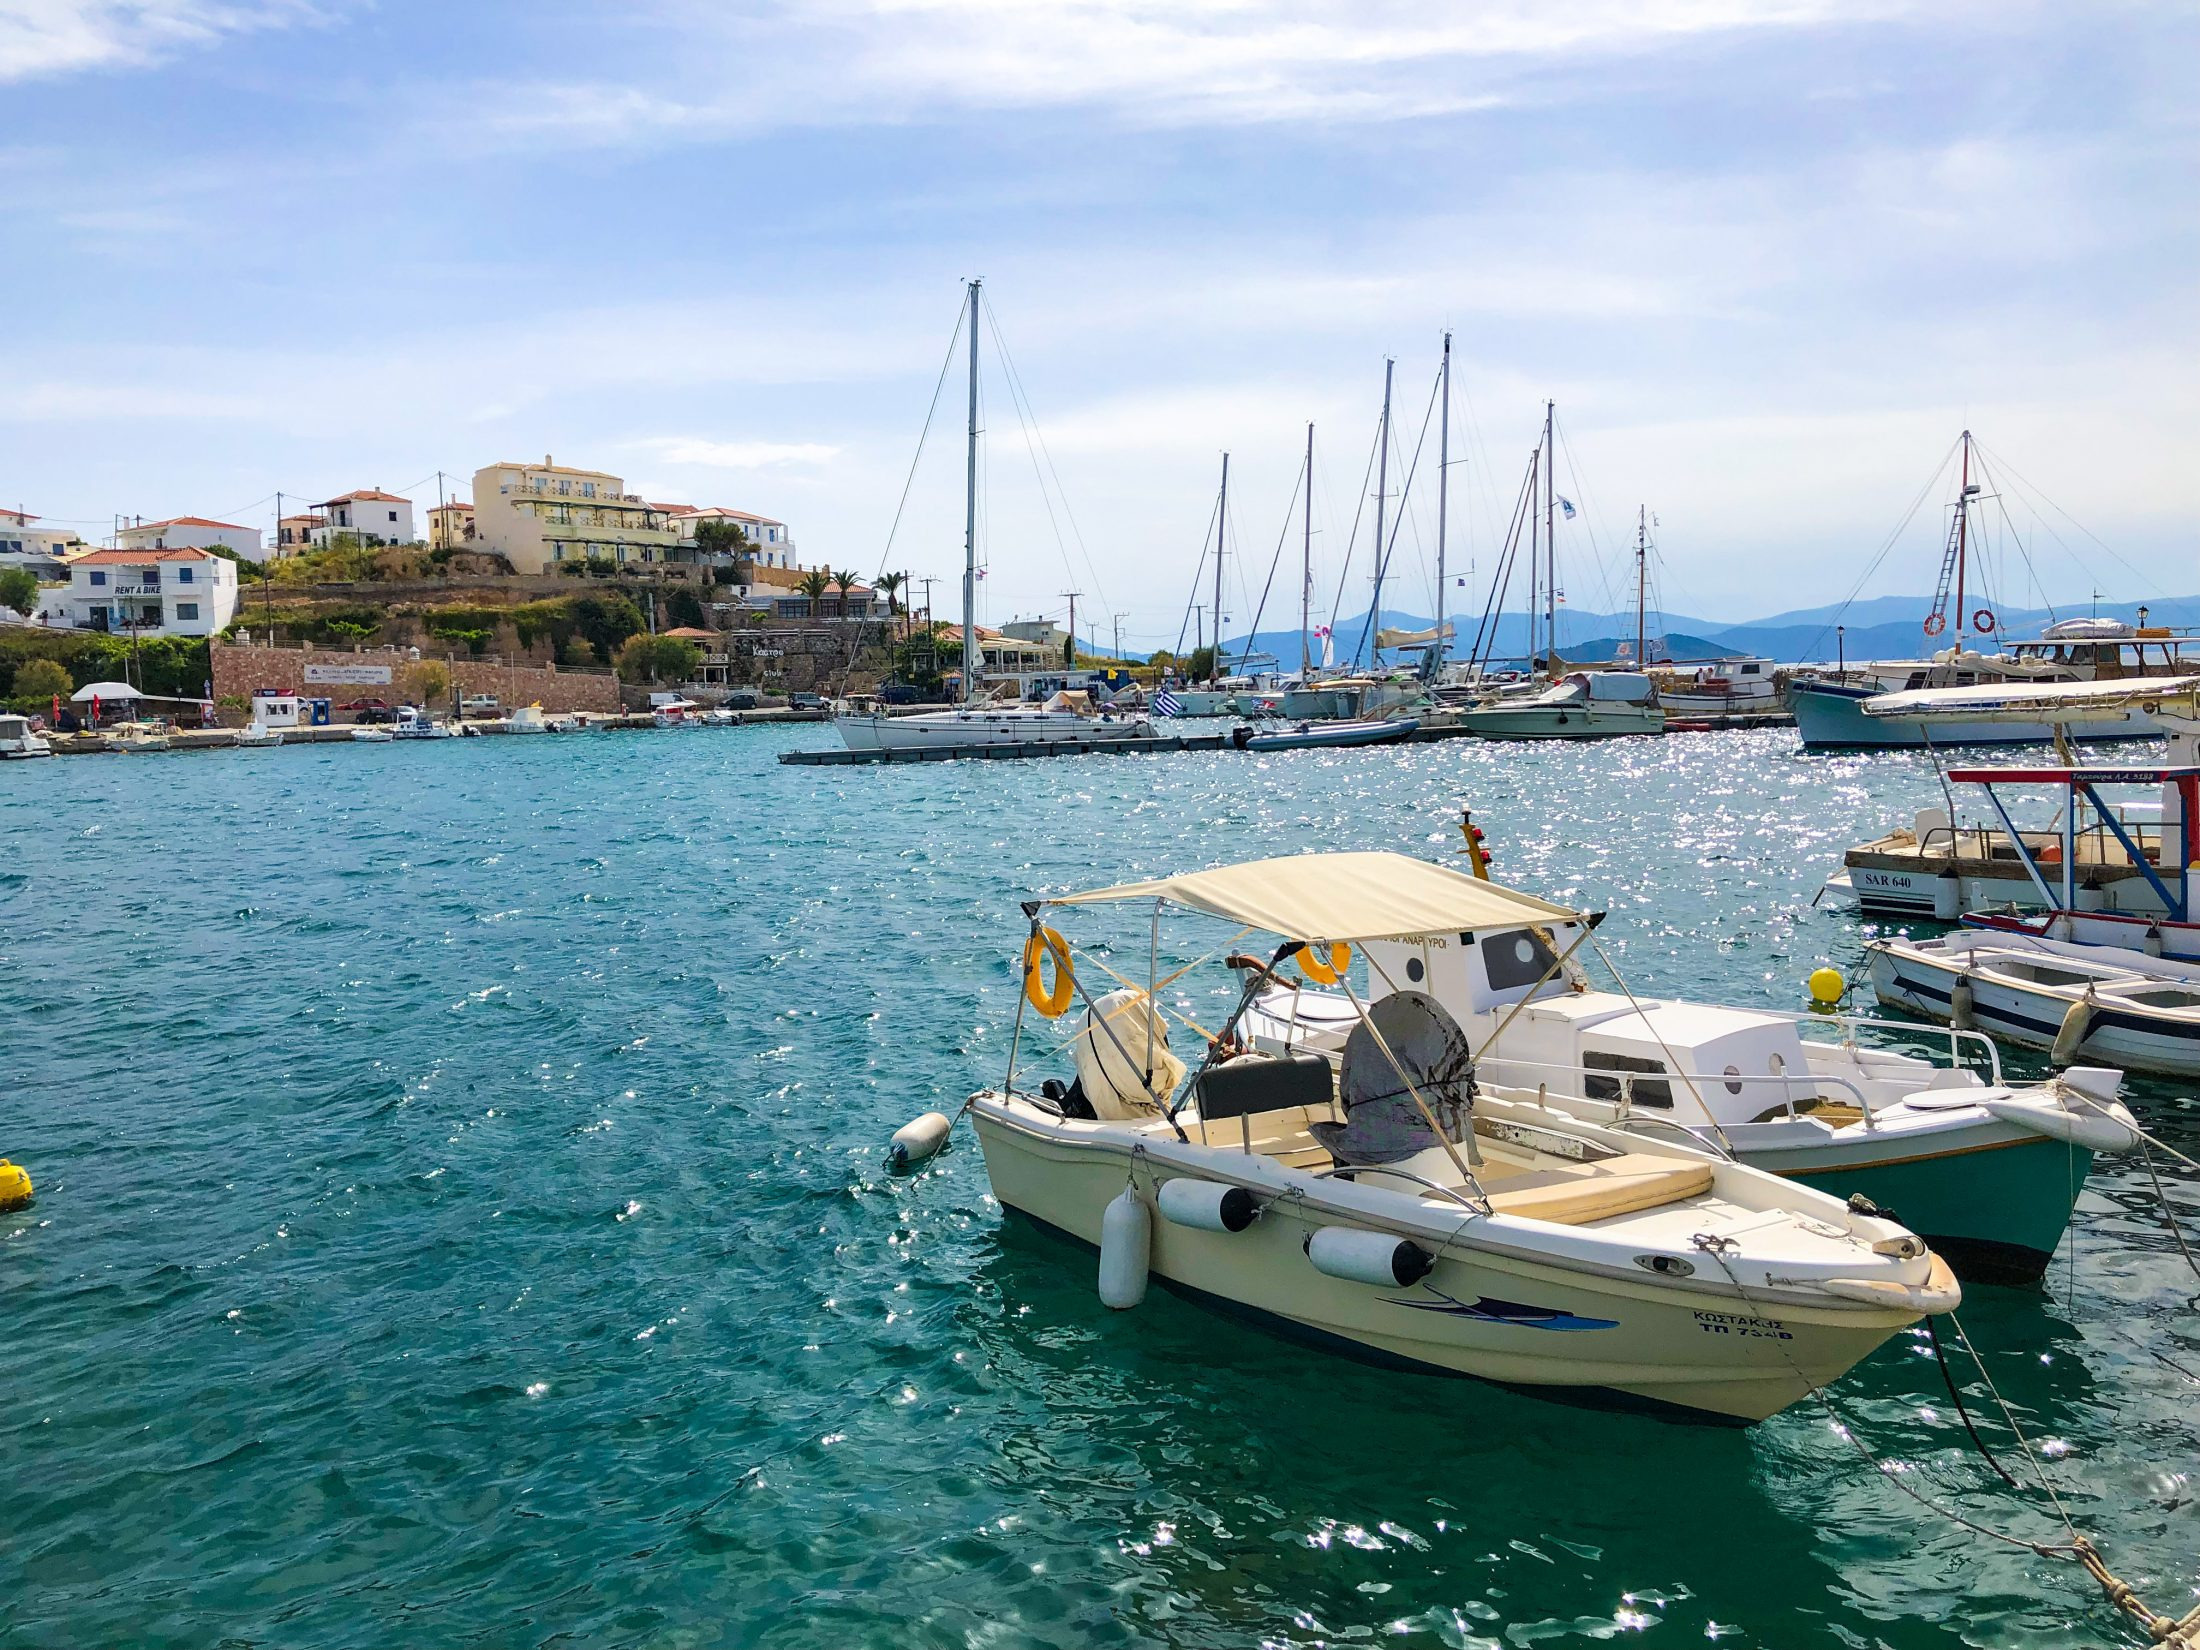 Many motor and sailing boats are in the port of Megalochori